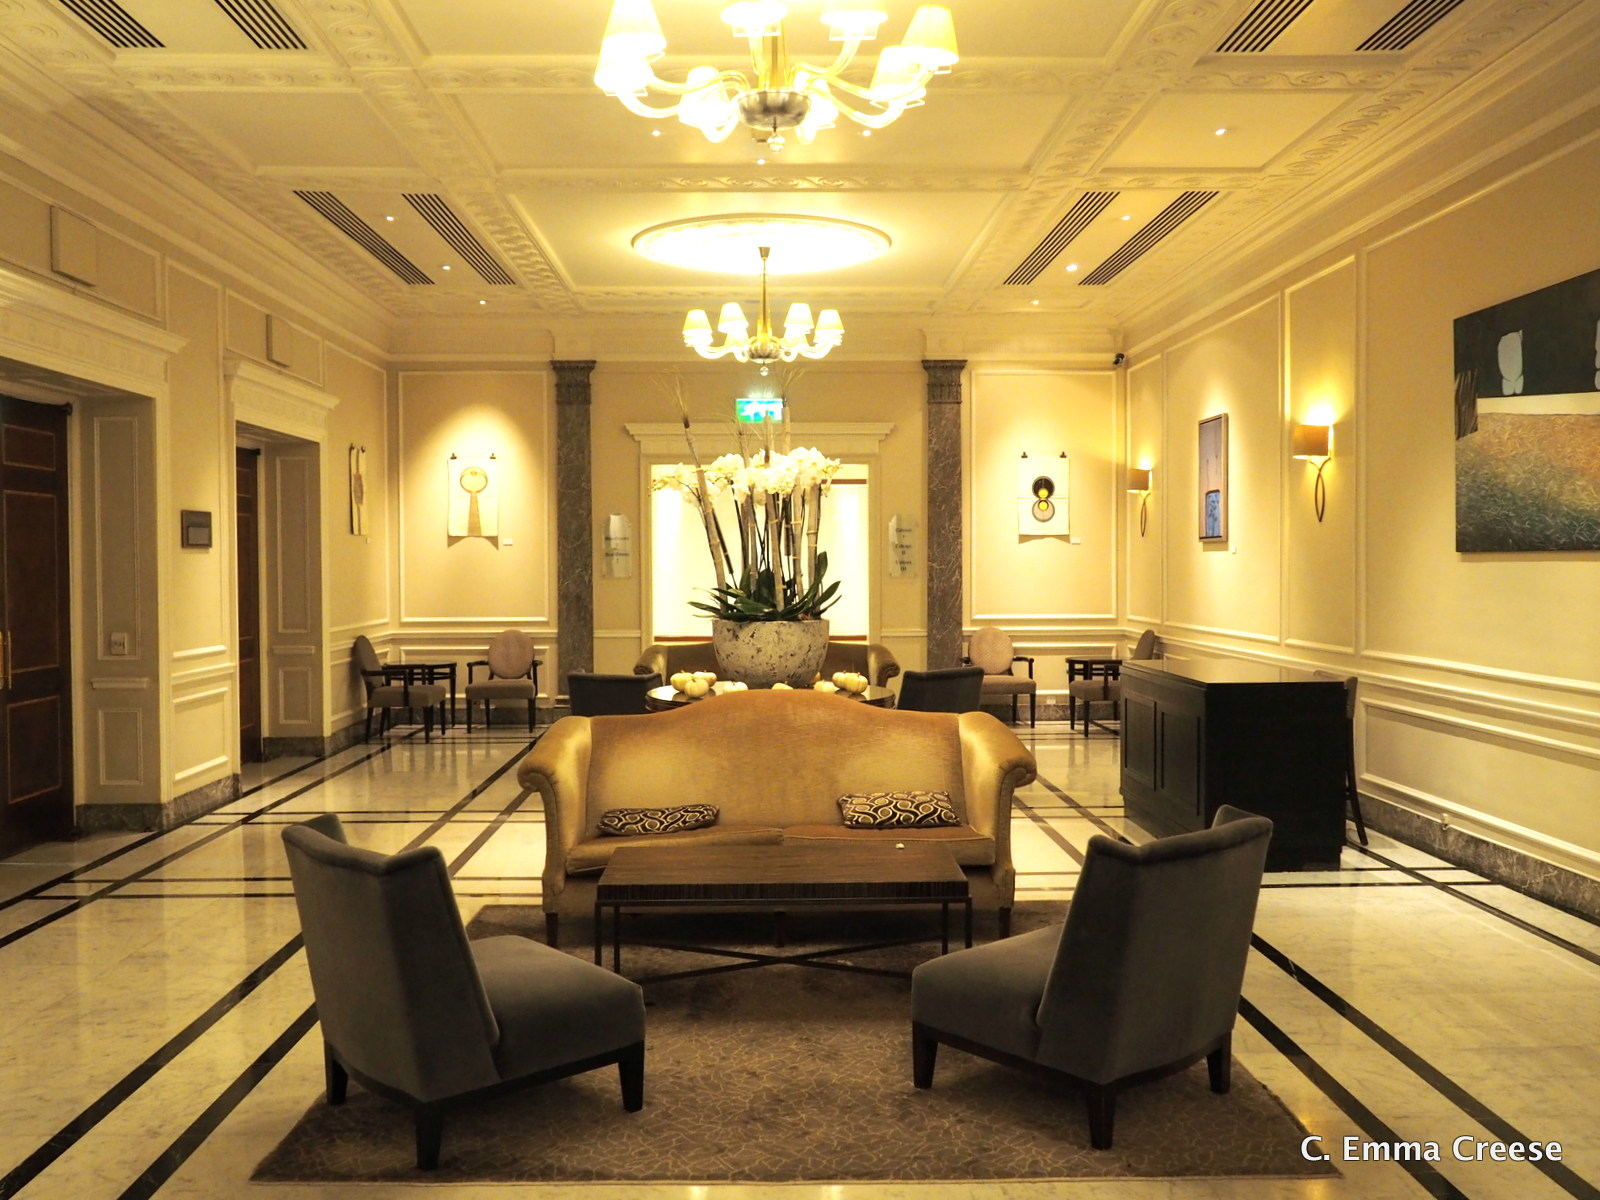 Beneath The Colour: The Hyatt Regency Hotel Marylebone | Adventures of a London Kiwi